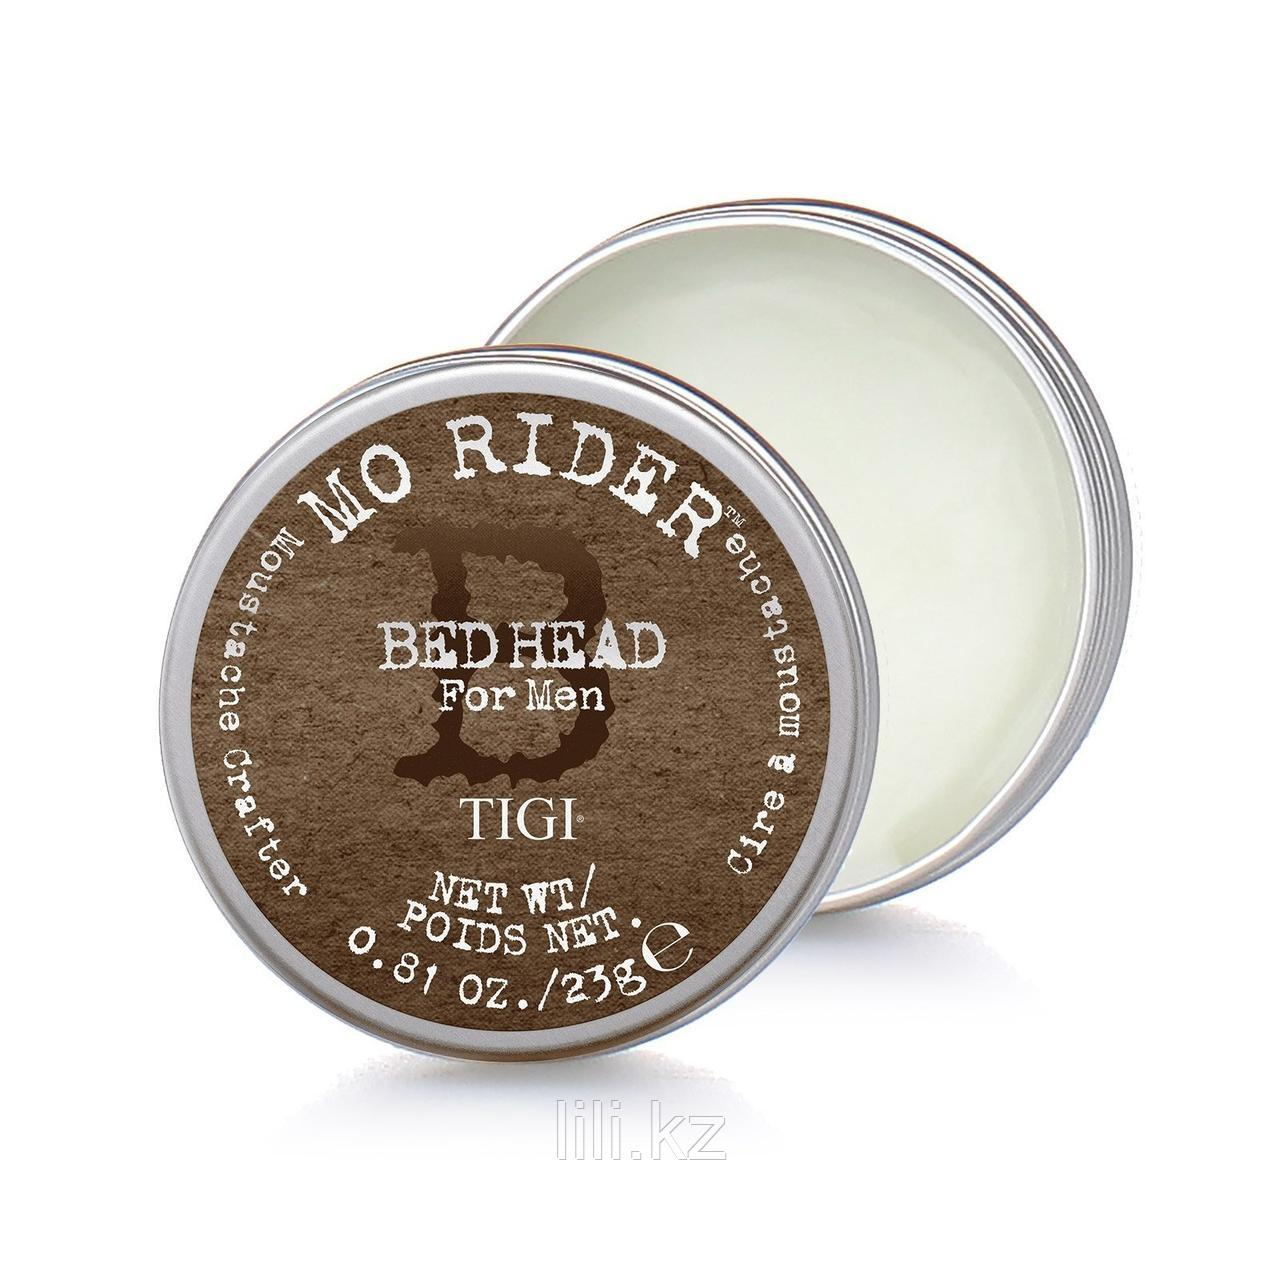 Воск для усов Bed Head B for Men Mo Rider Moustache Crafter 23 гр.